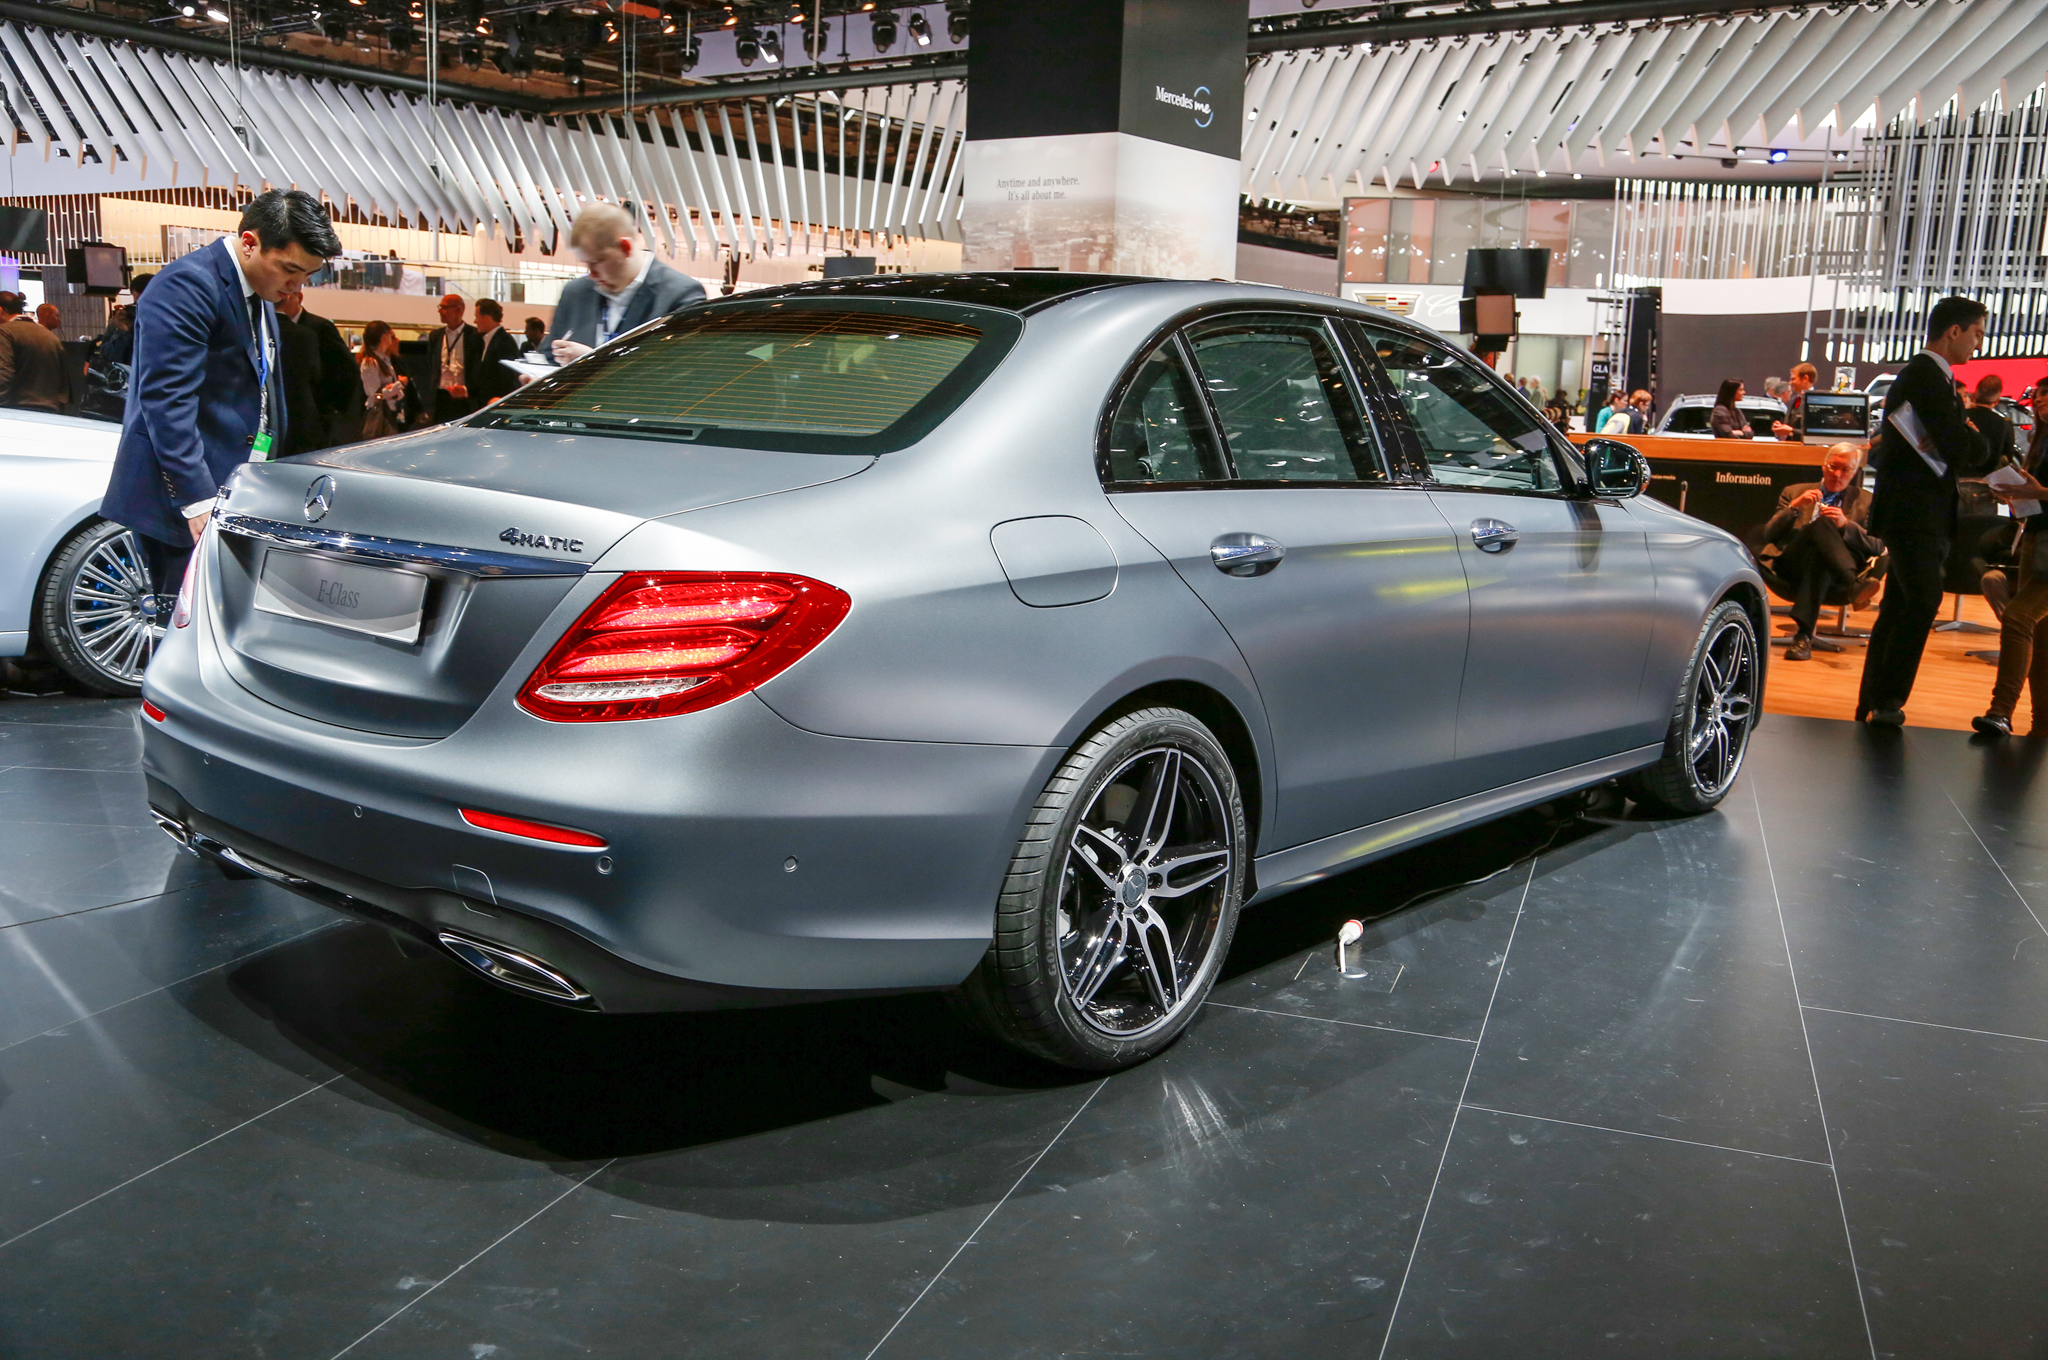 2017 E550 Mercedes New Cars Used Car Reviews And Pricing Benz E Cl